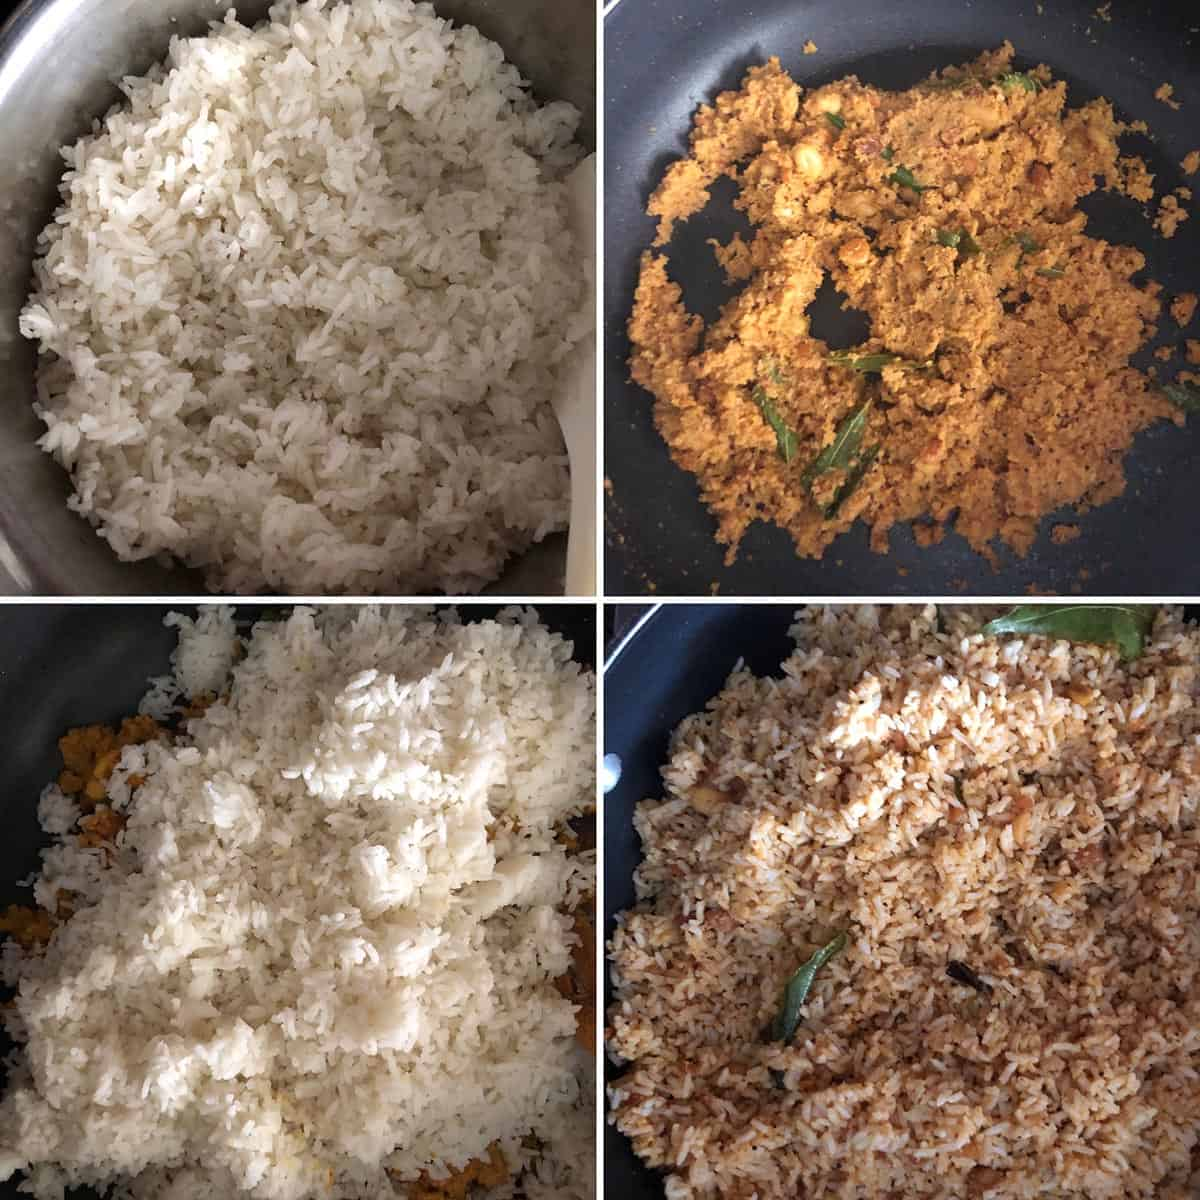 photos showing the addition of cooked rice to the masala in a nonstick pan